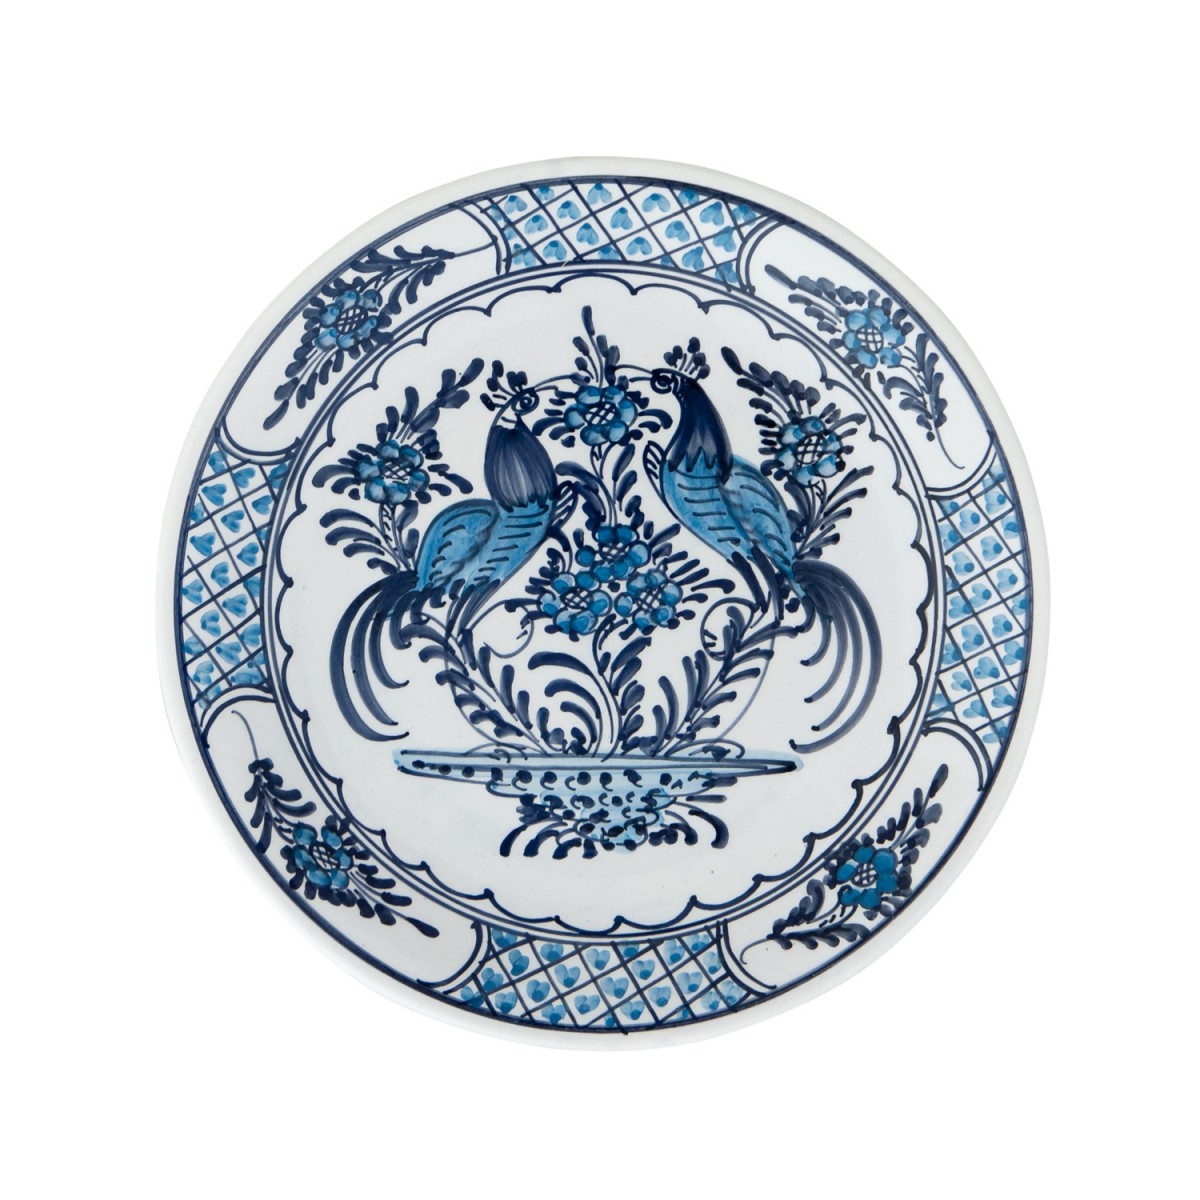 Skyriana_Hand_painted_Ceramic_Blue_And_White_Plates-Pair_Peacocks-1